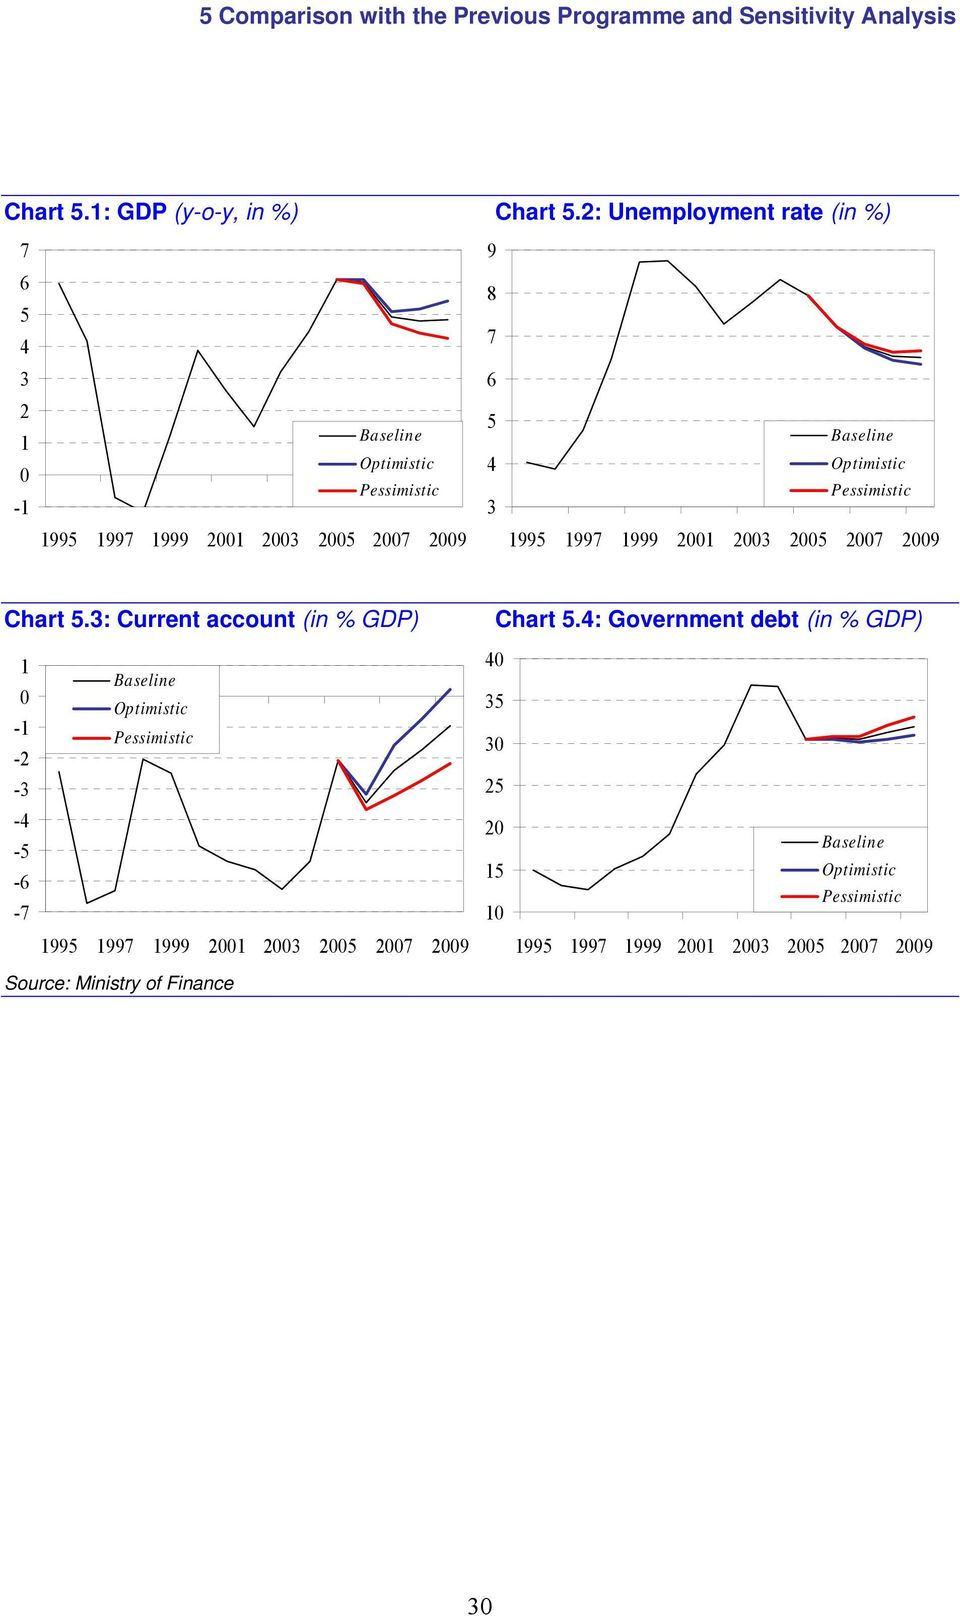 5 4 3 Chart 5.3: Current account (in % GDP) Chart 5.